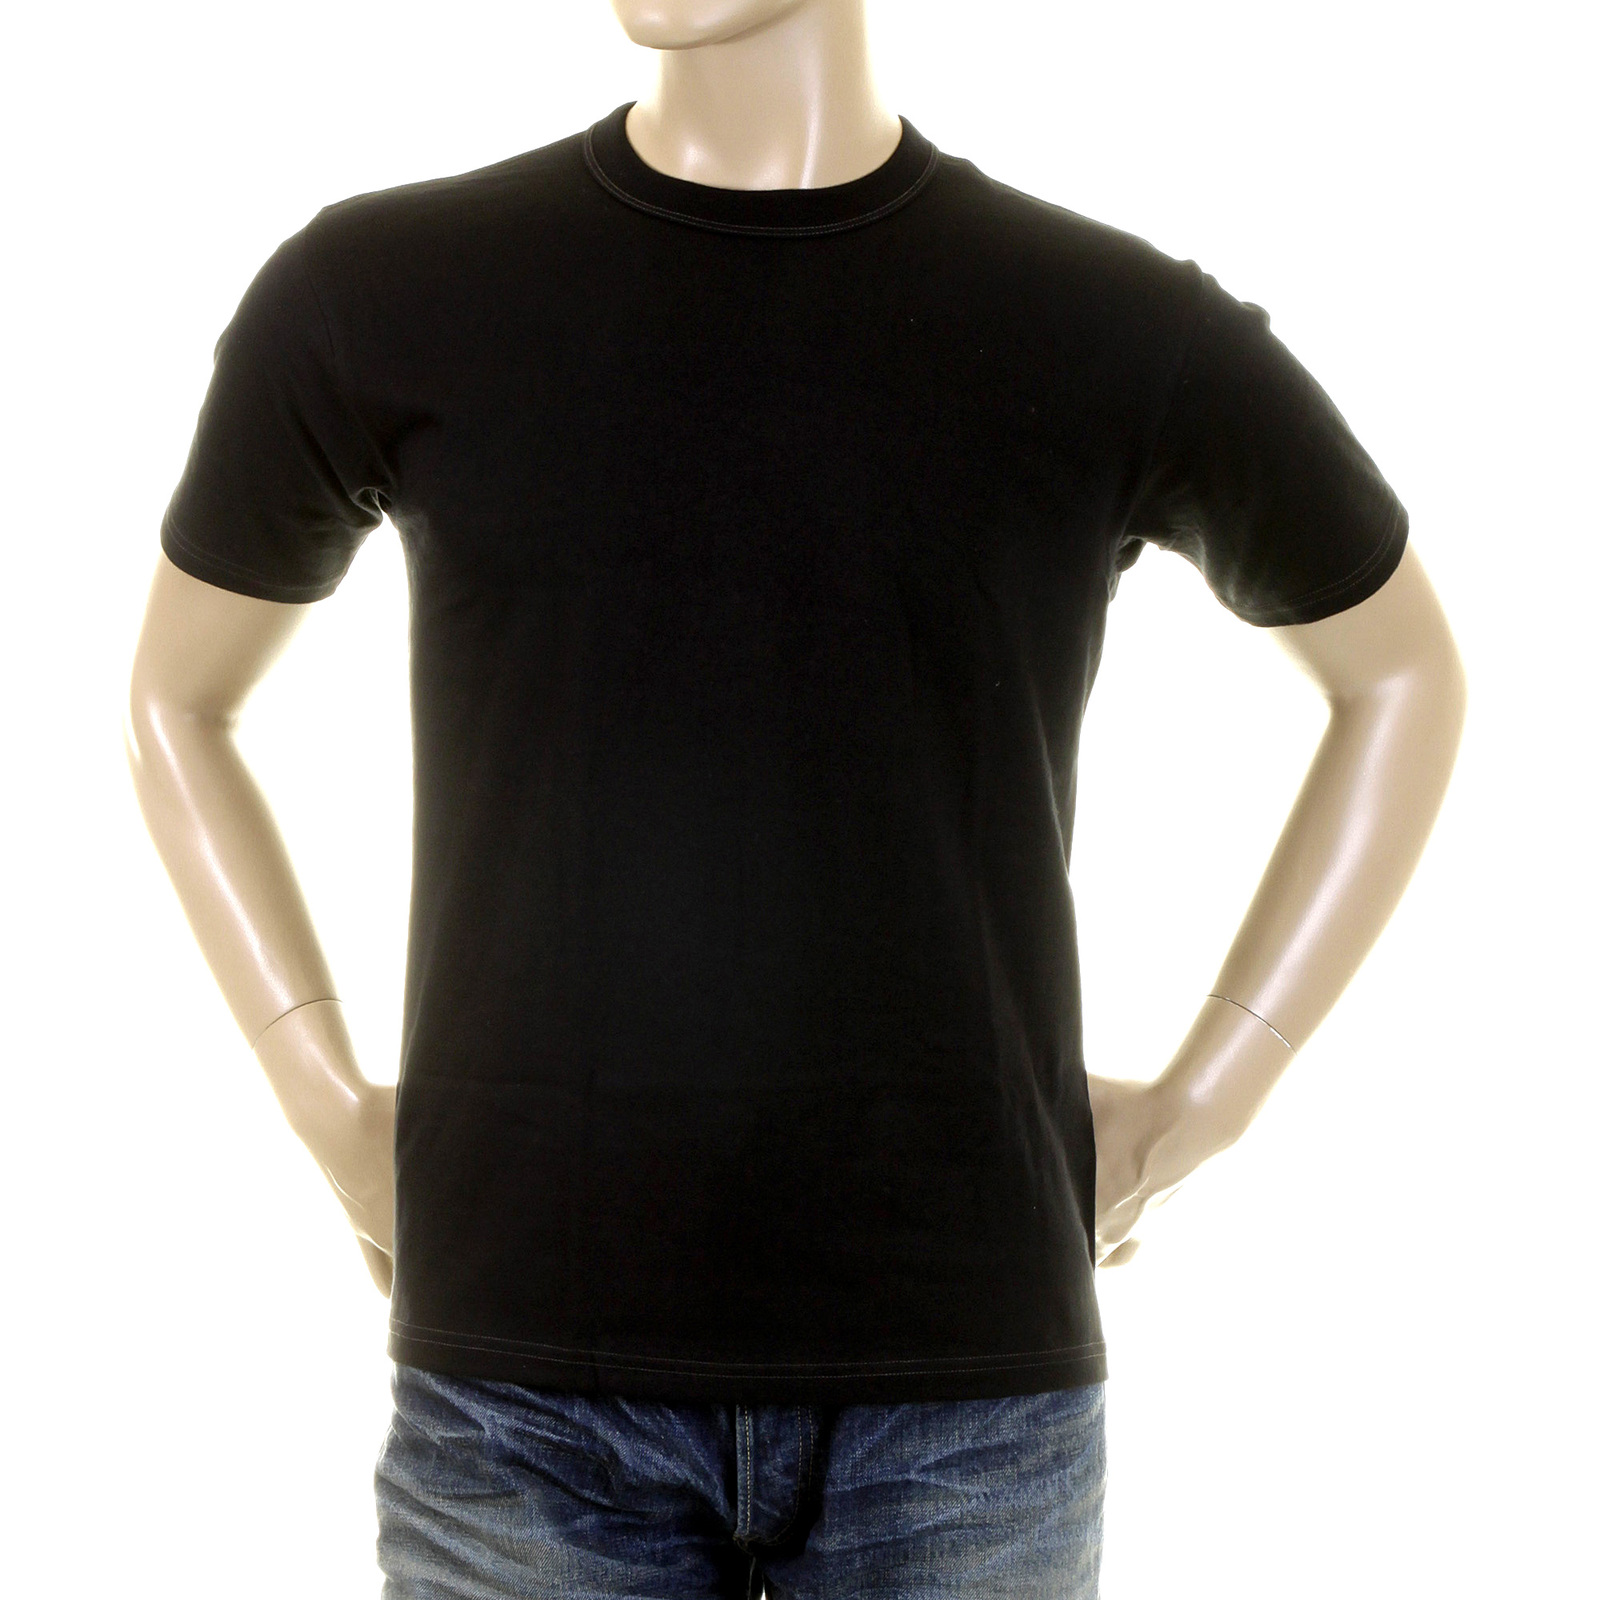 a8474b109ce Buy Mens Cool And Stylish Black T Shirt by Whitesville